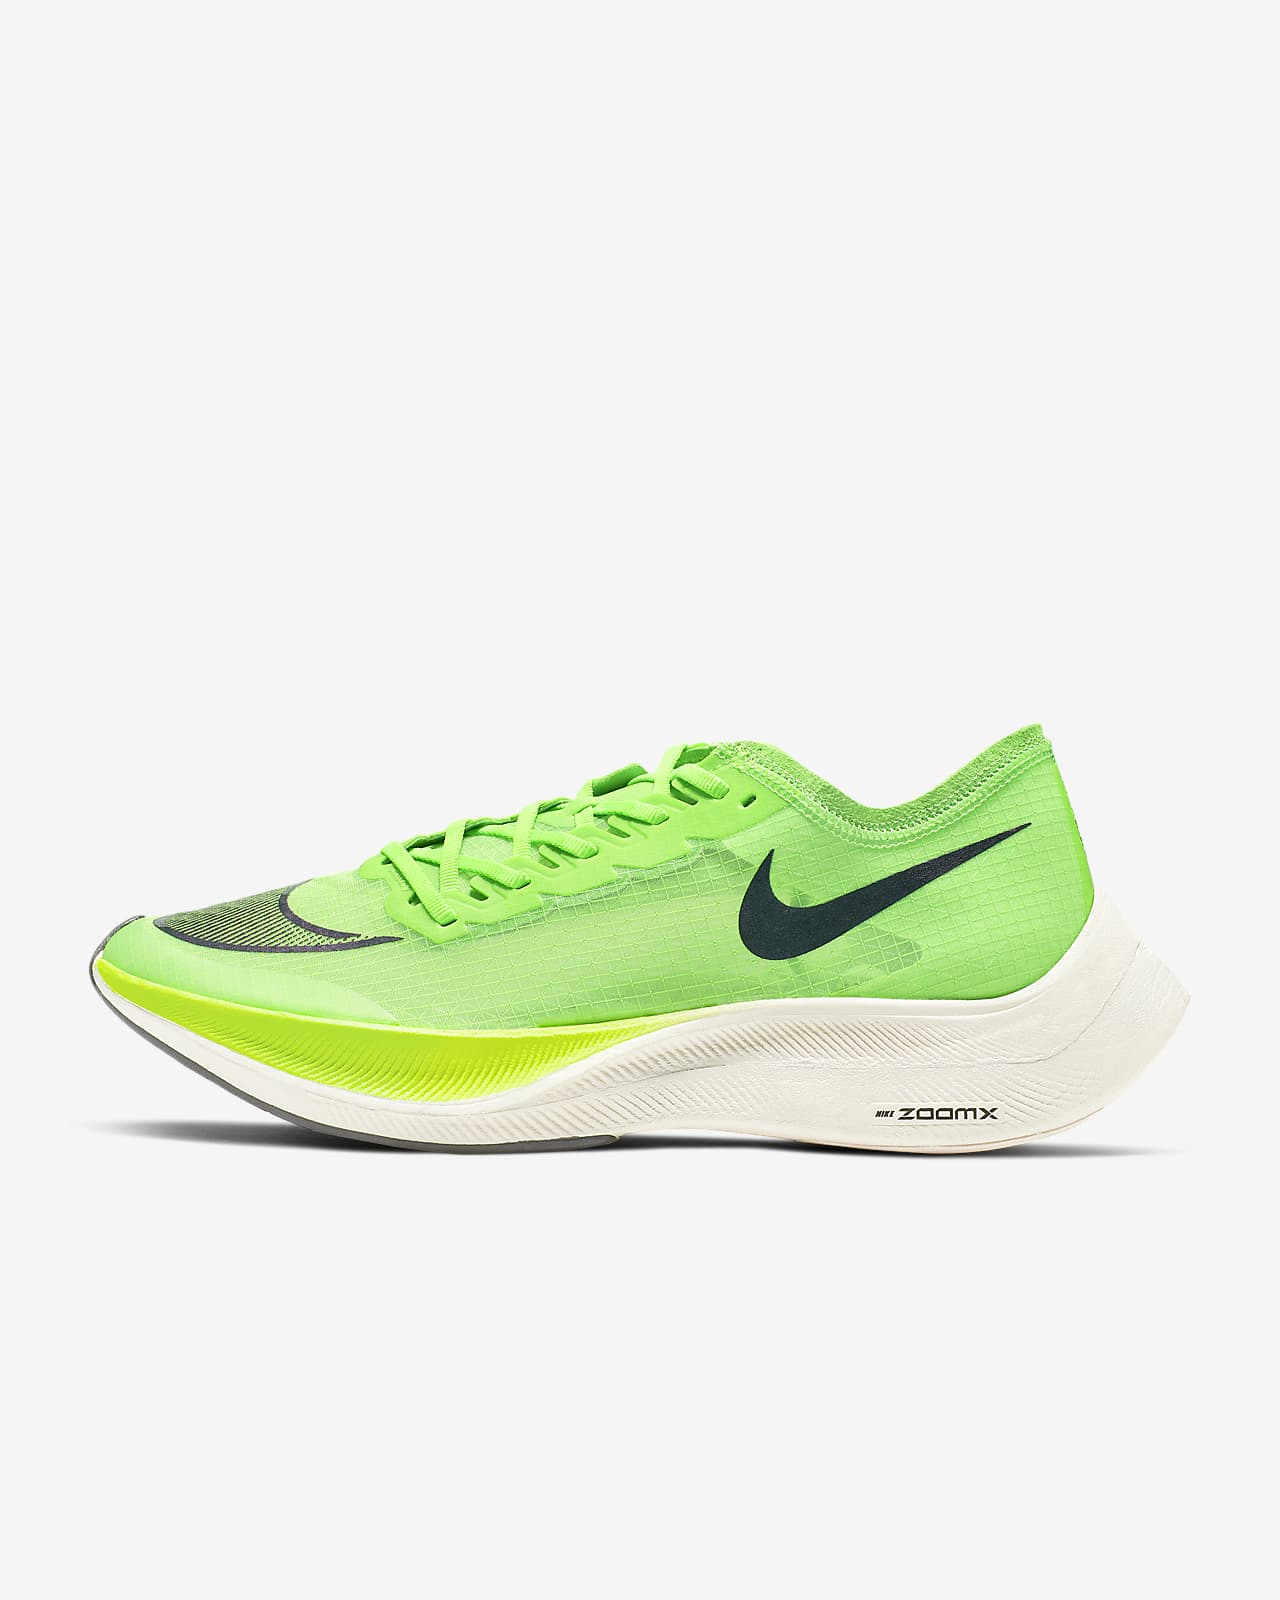 Nike ZoomX Vaporfly NEXT% Road Racing Shoes